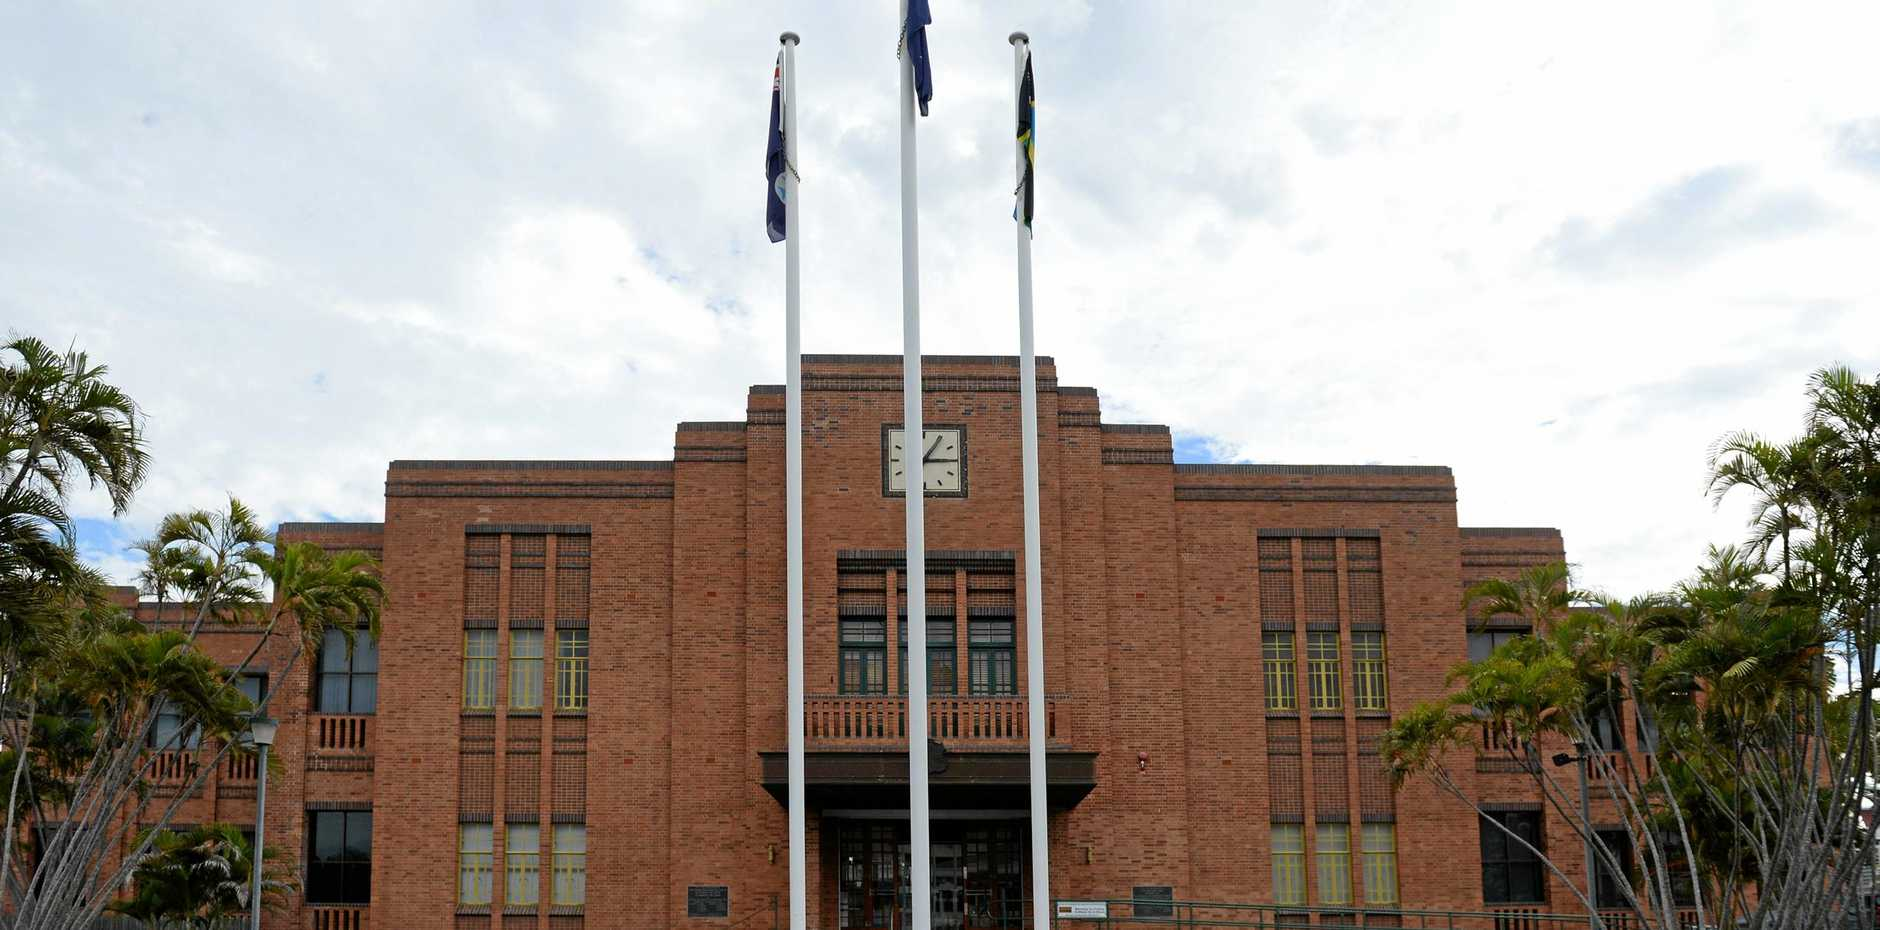 Rockhampton City Hall on Bolsover Street will be the site of tomorrow's council meeting.